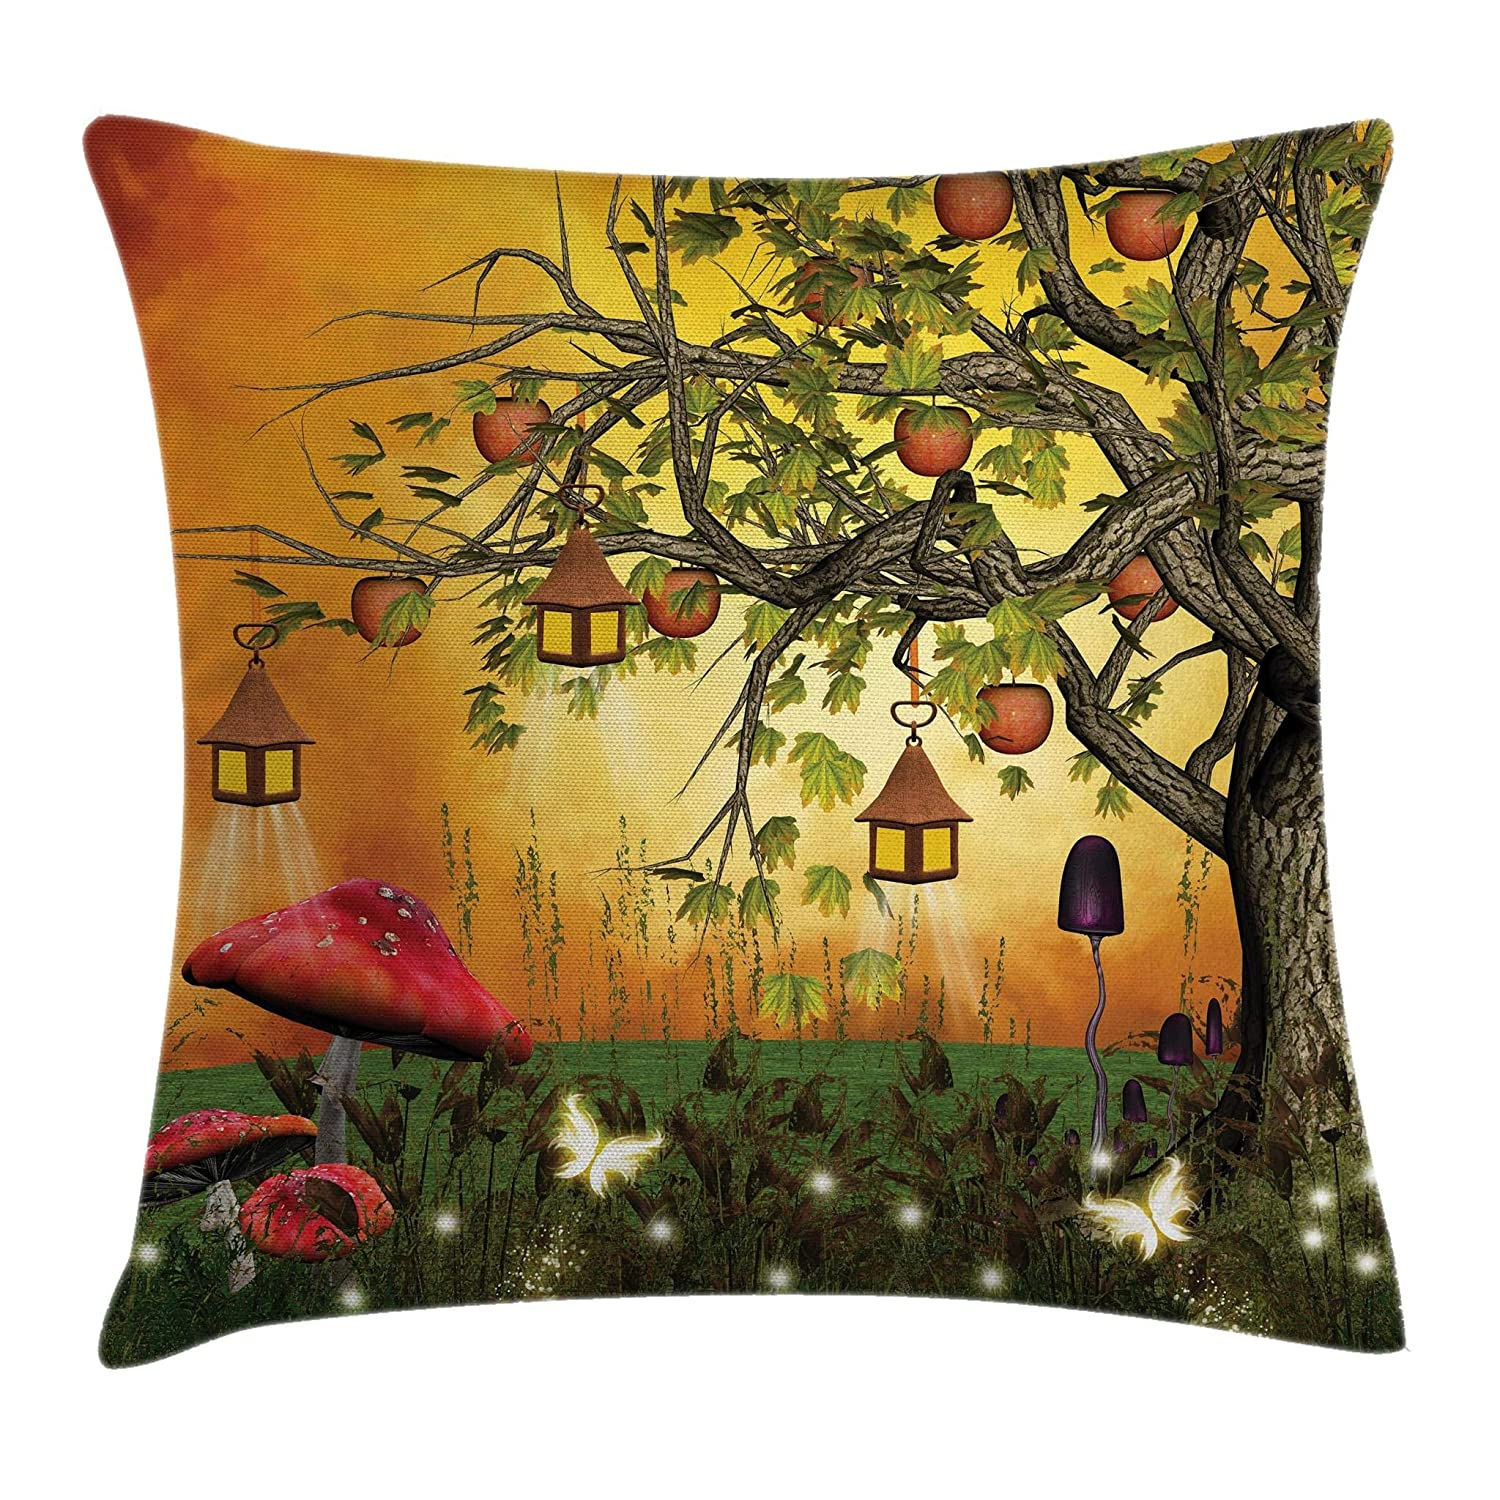 Ambesonne Fantasy Throw Pillow Cushion Cover, Wonderland Forest with Fairies Butterflies Elves and Apple Tree Magical Universe, Decorative Square Accent Pillow Case, 20 X 20 inches, Multicolor